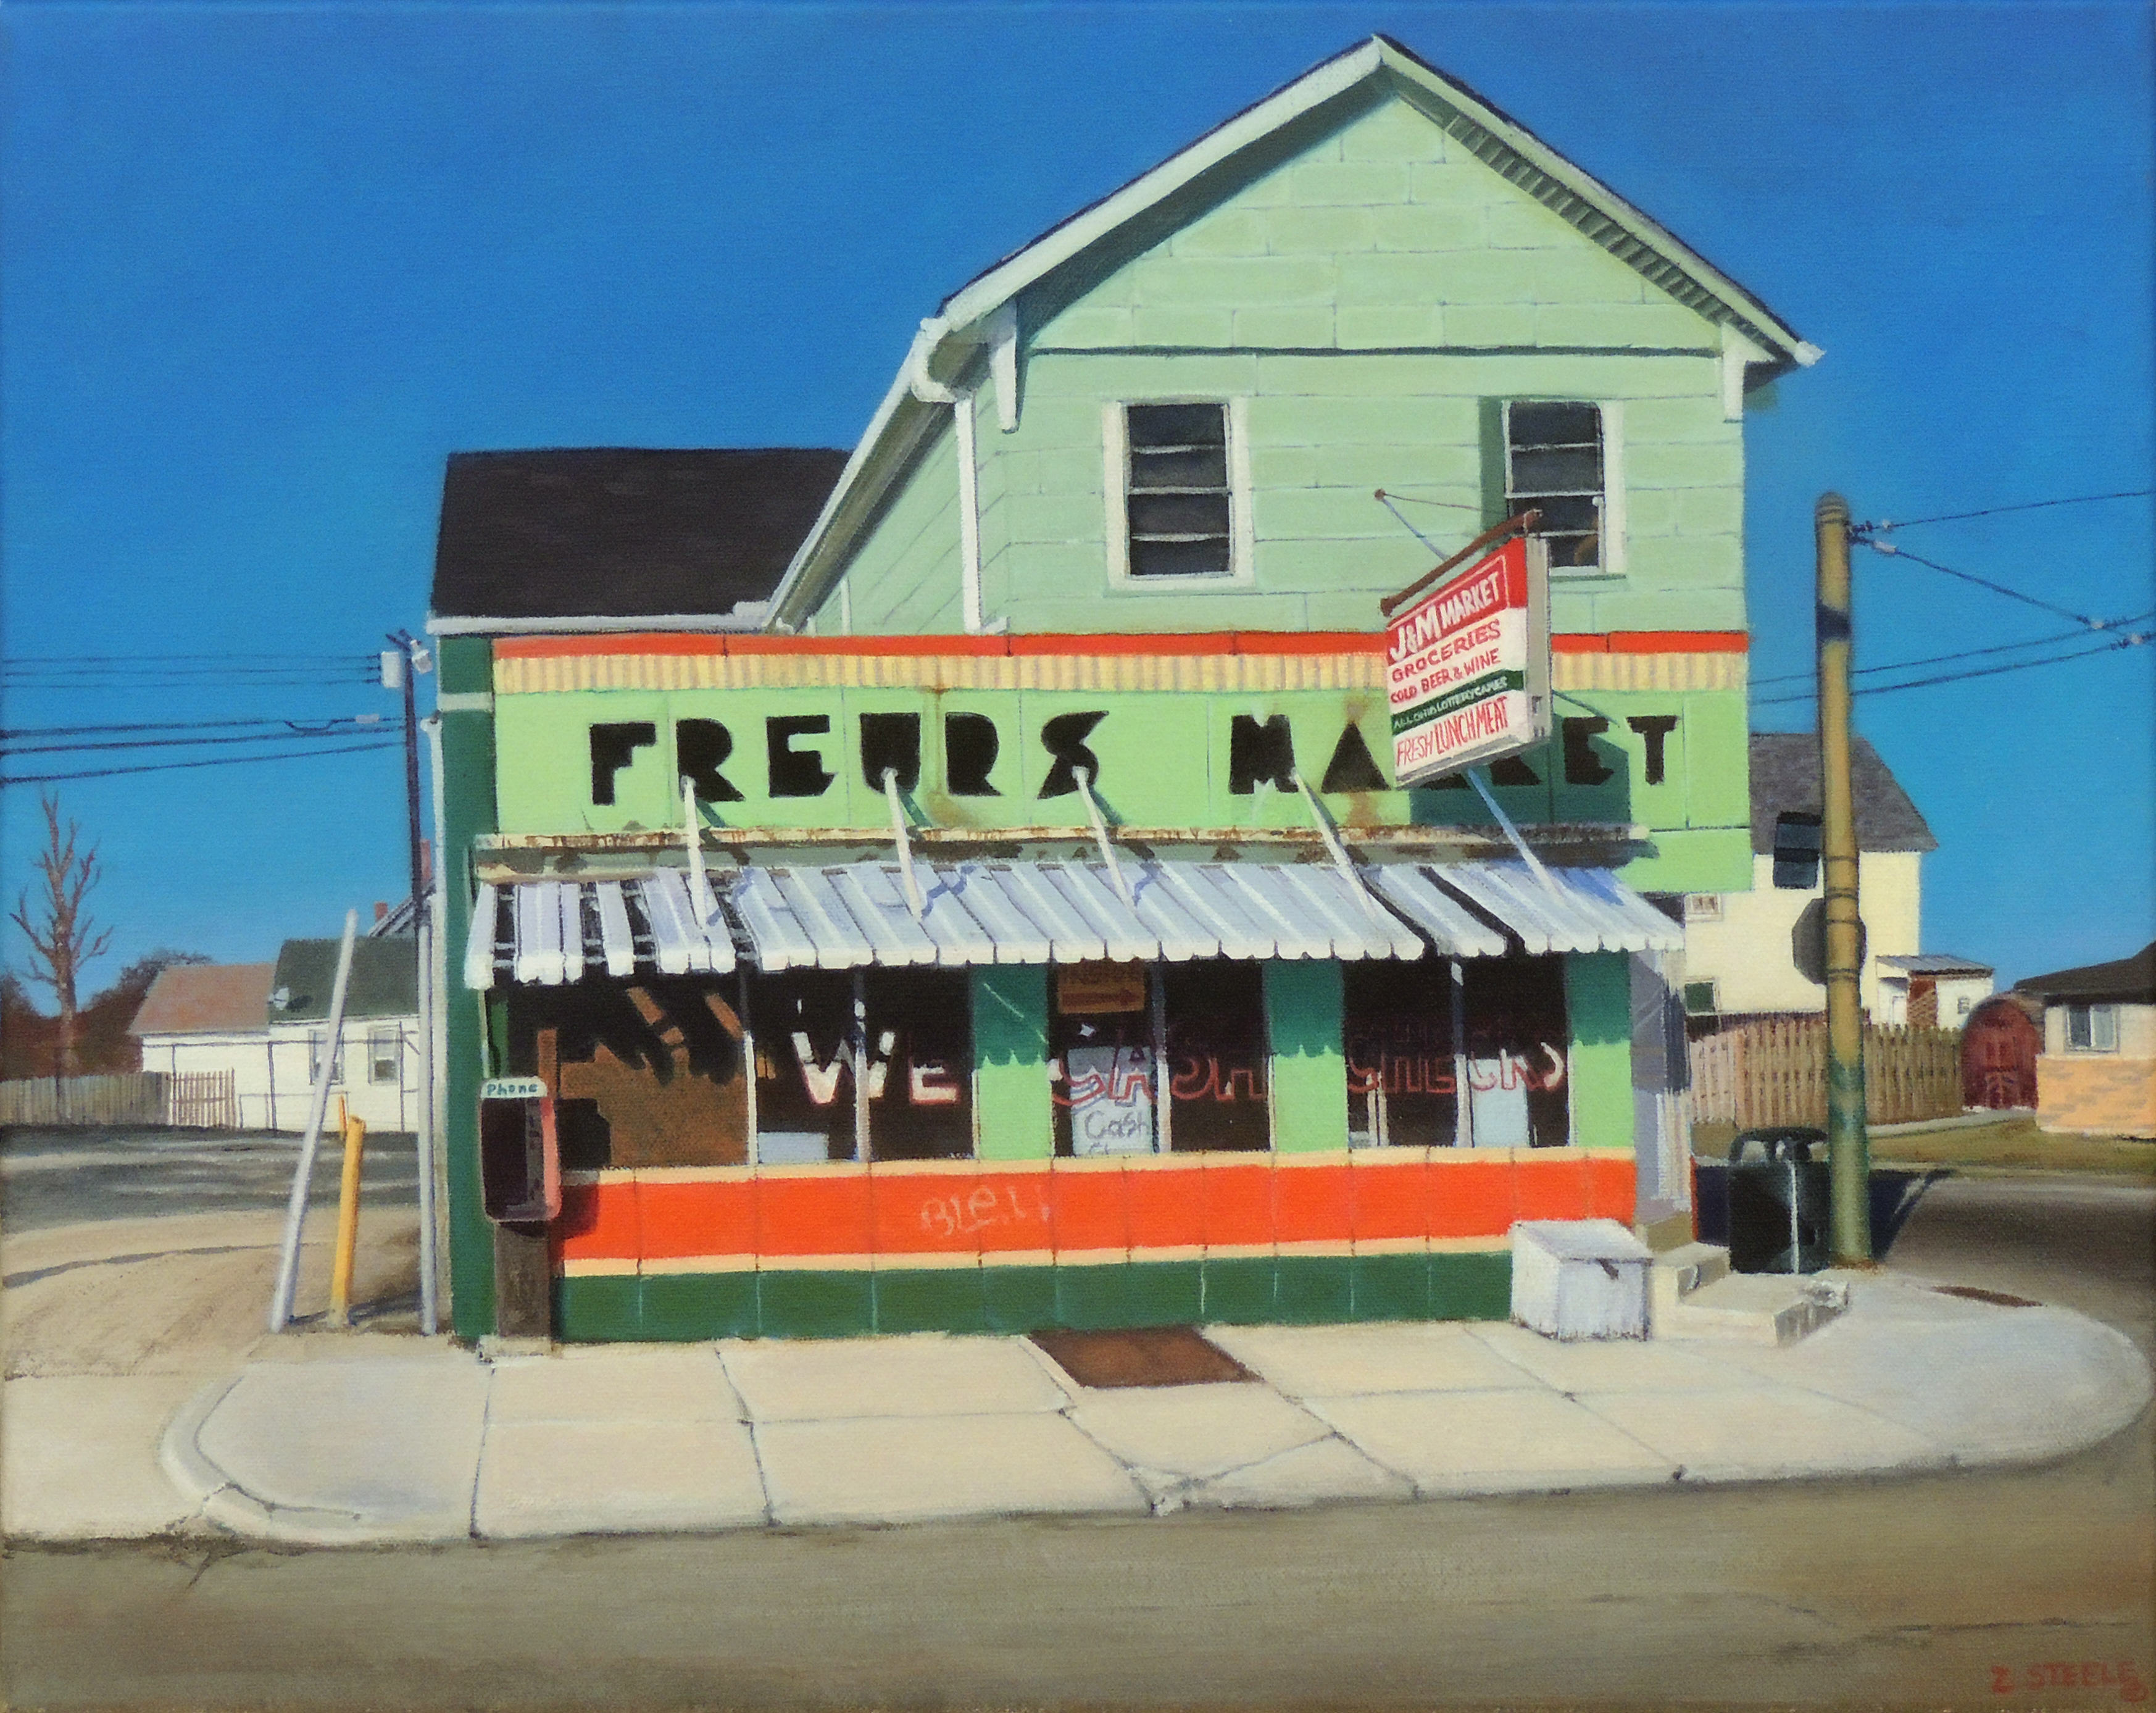 Zachary Steele | FREURS MARKET | Acrylic on Canvas